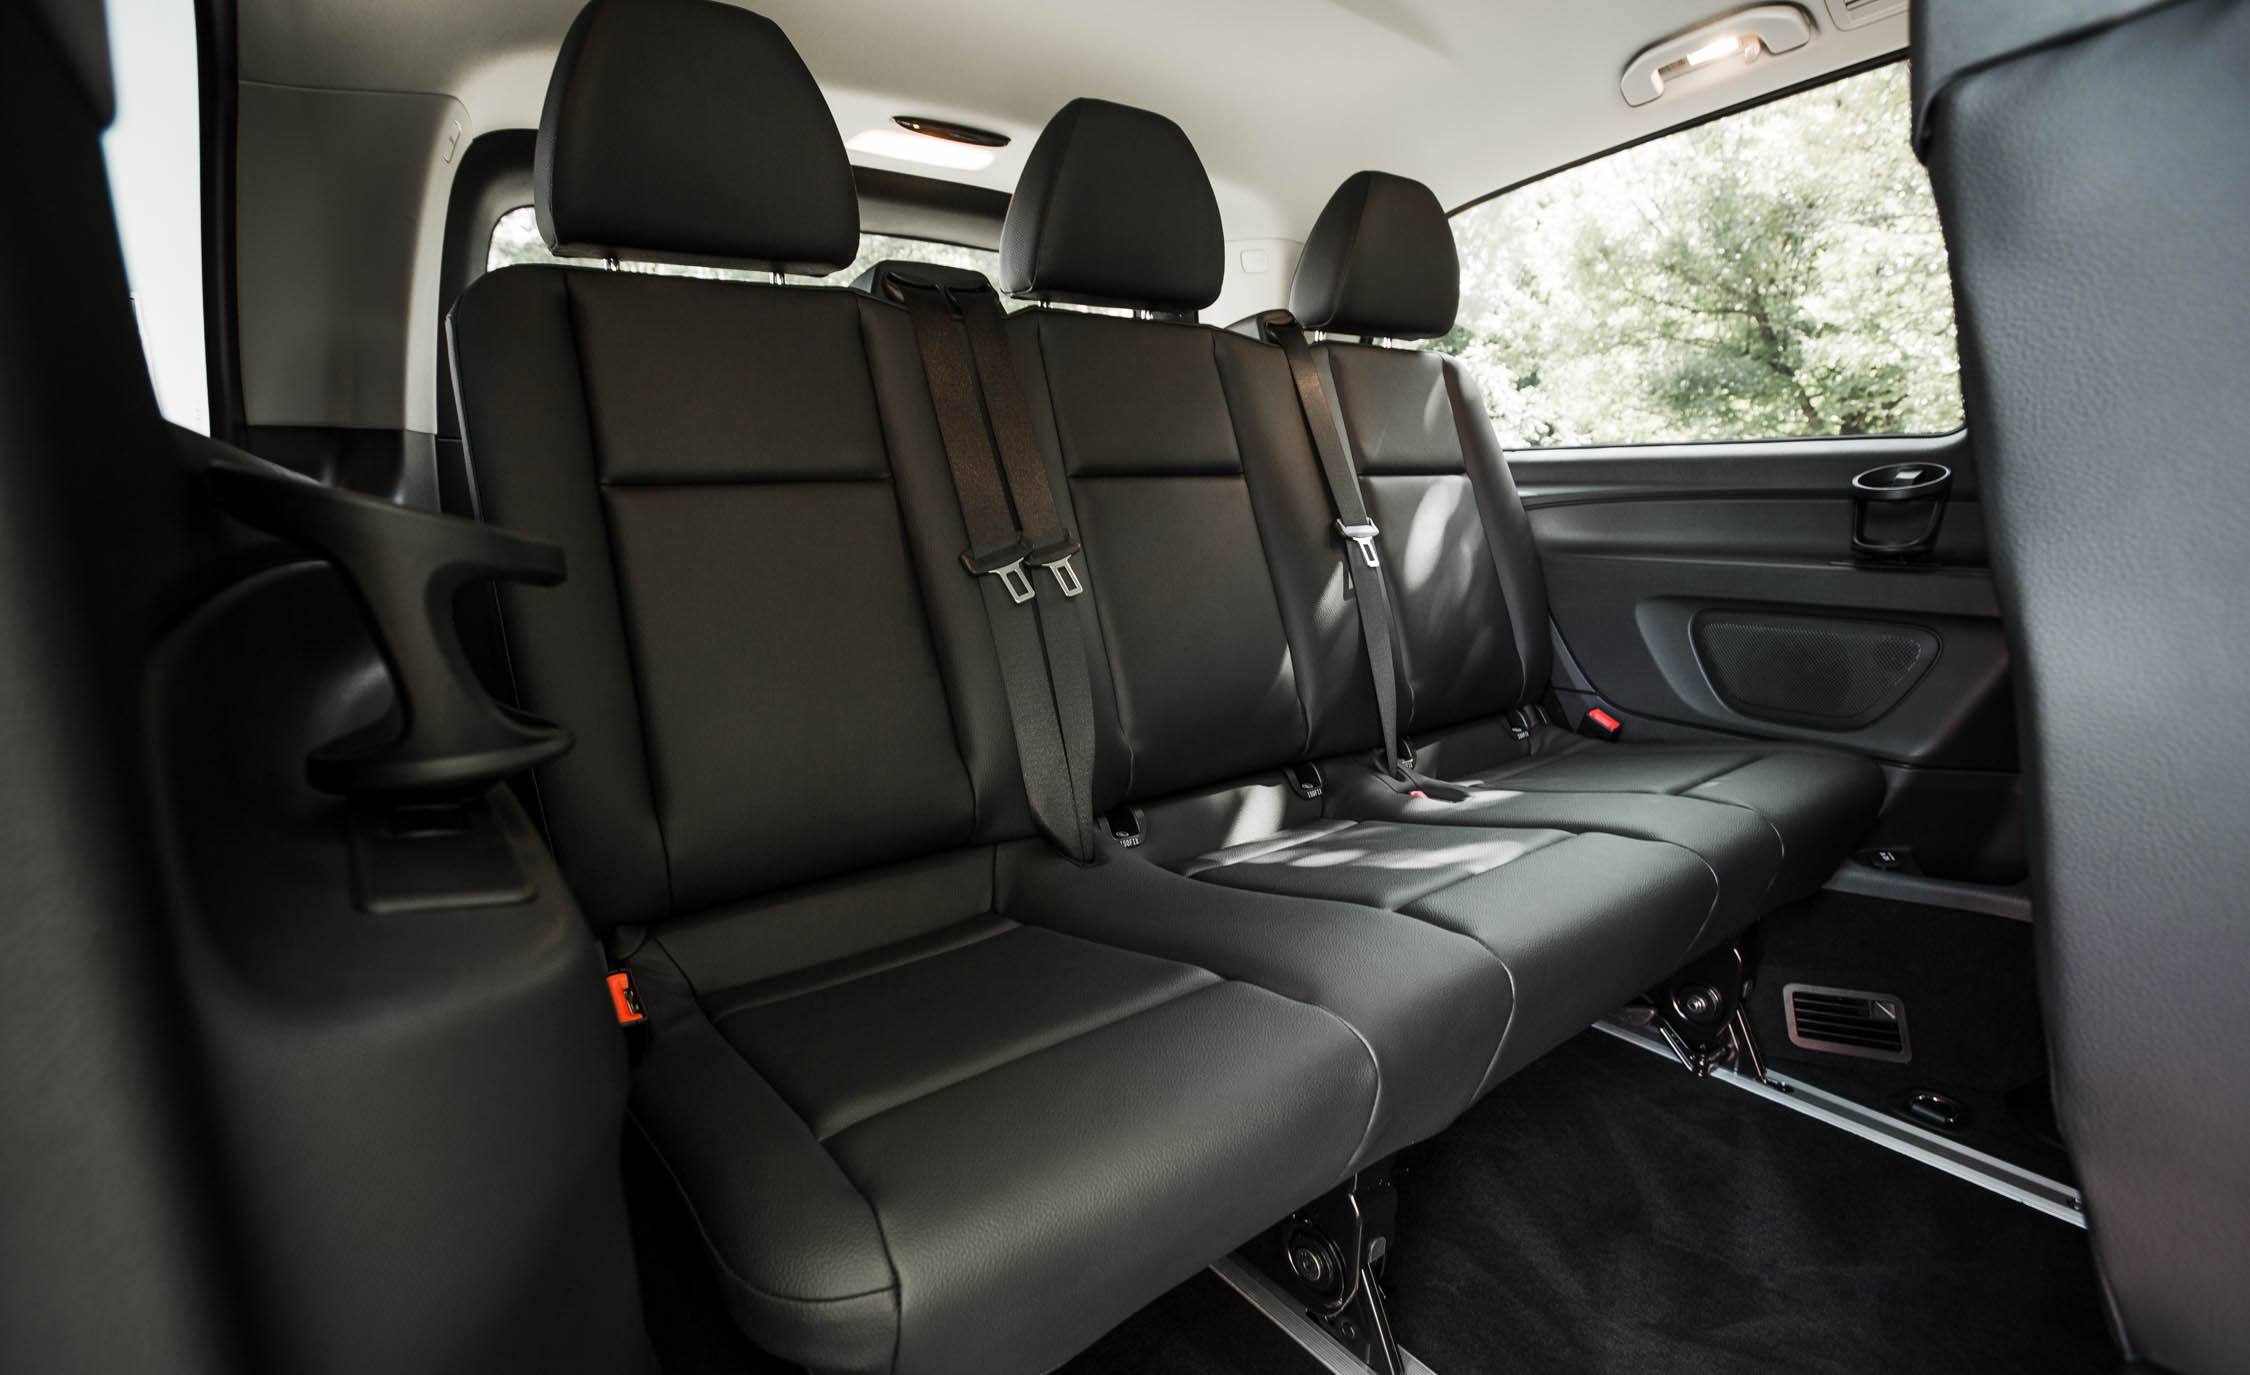 2016 Mercedes-Benz Metris Interior 3rd Row Seats